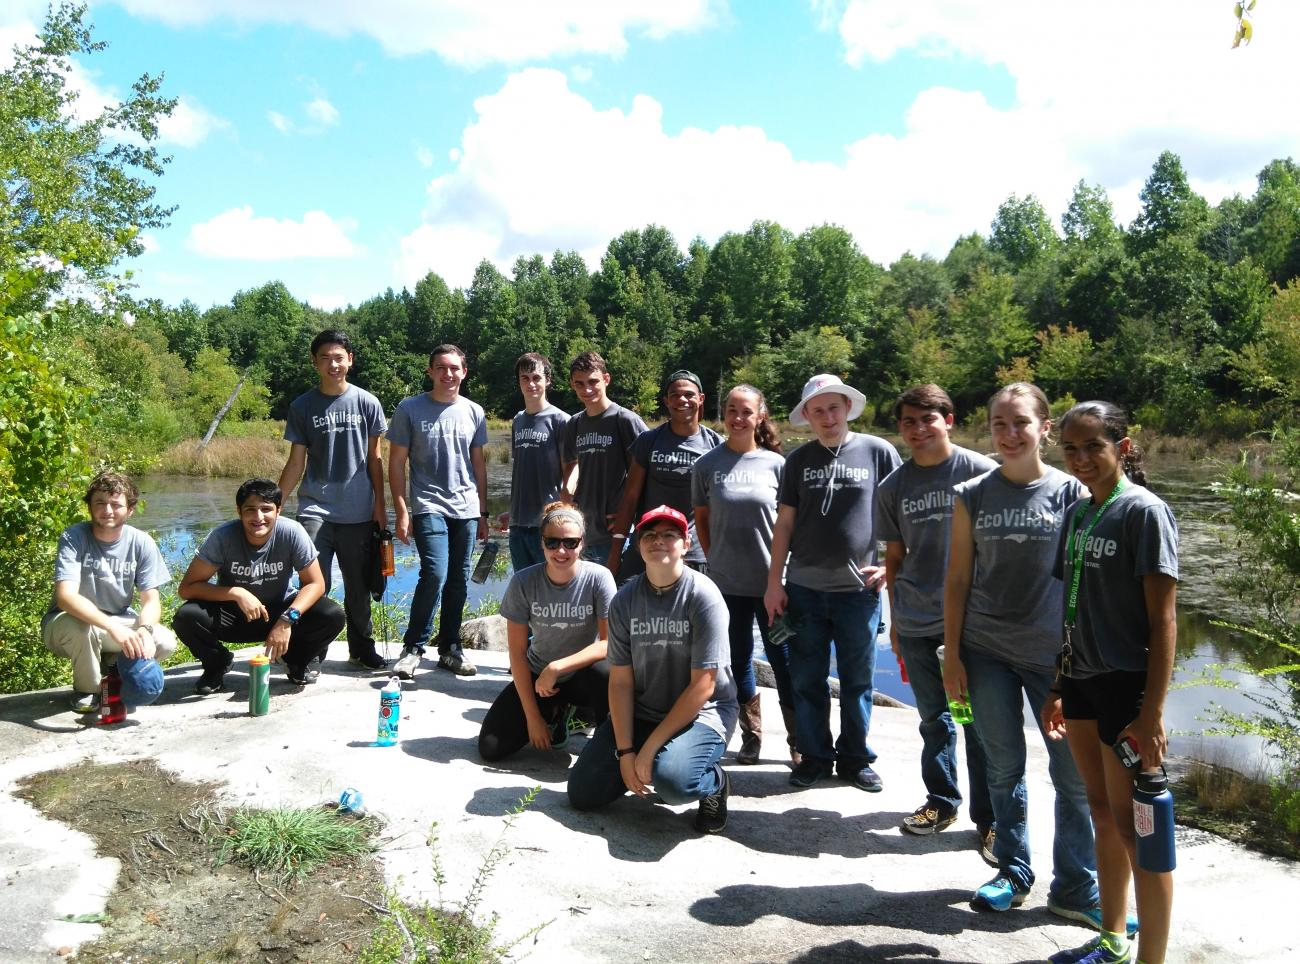 Volunteer group photo after a work day